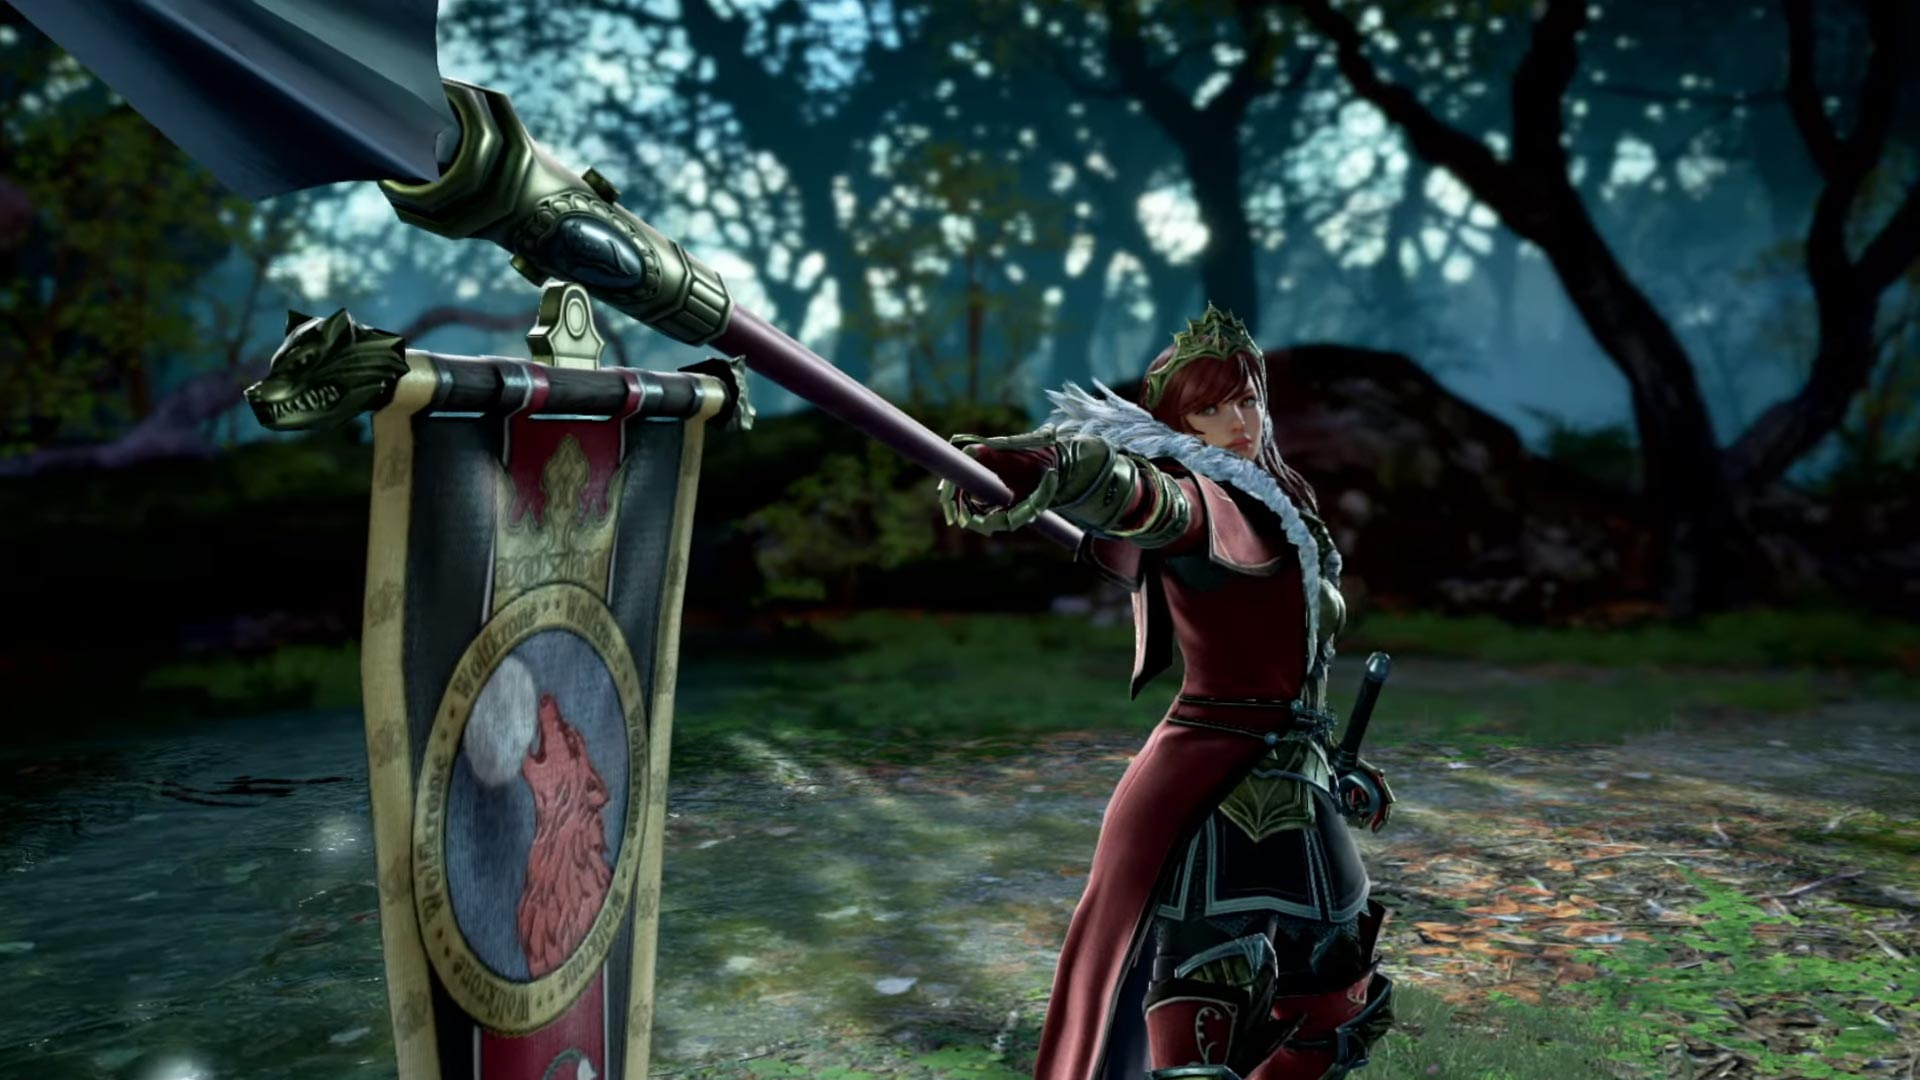 Soul Calibur 6 Hilde Reveal Trailer Gallery 8 out of 9 image gallery